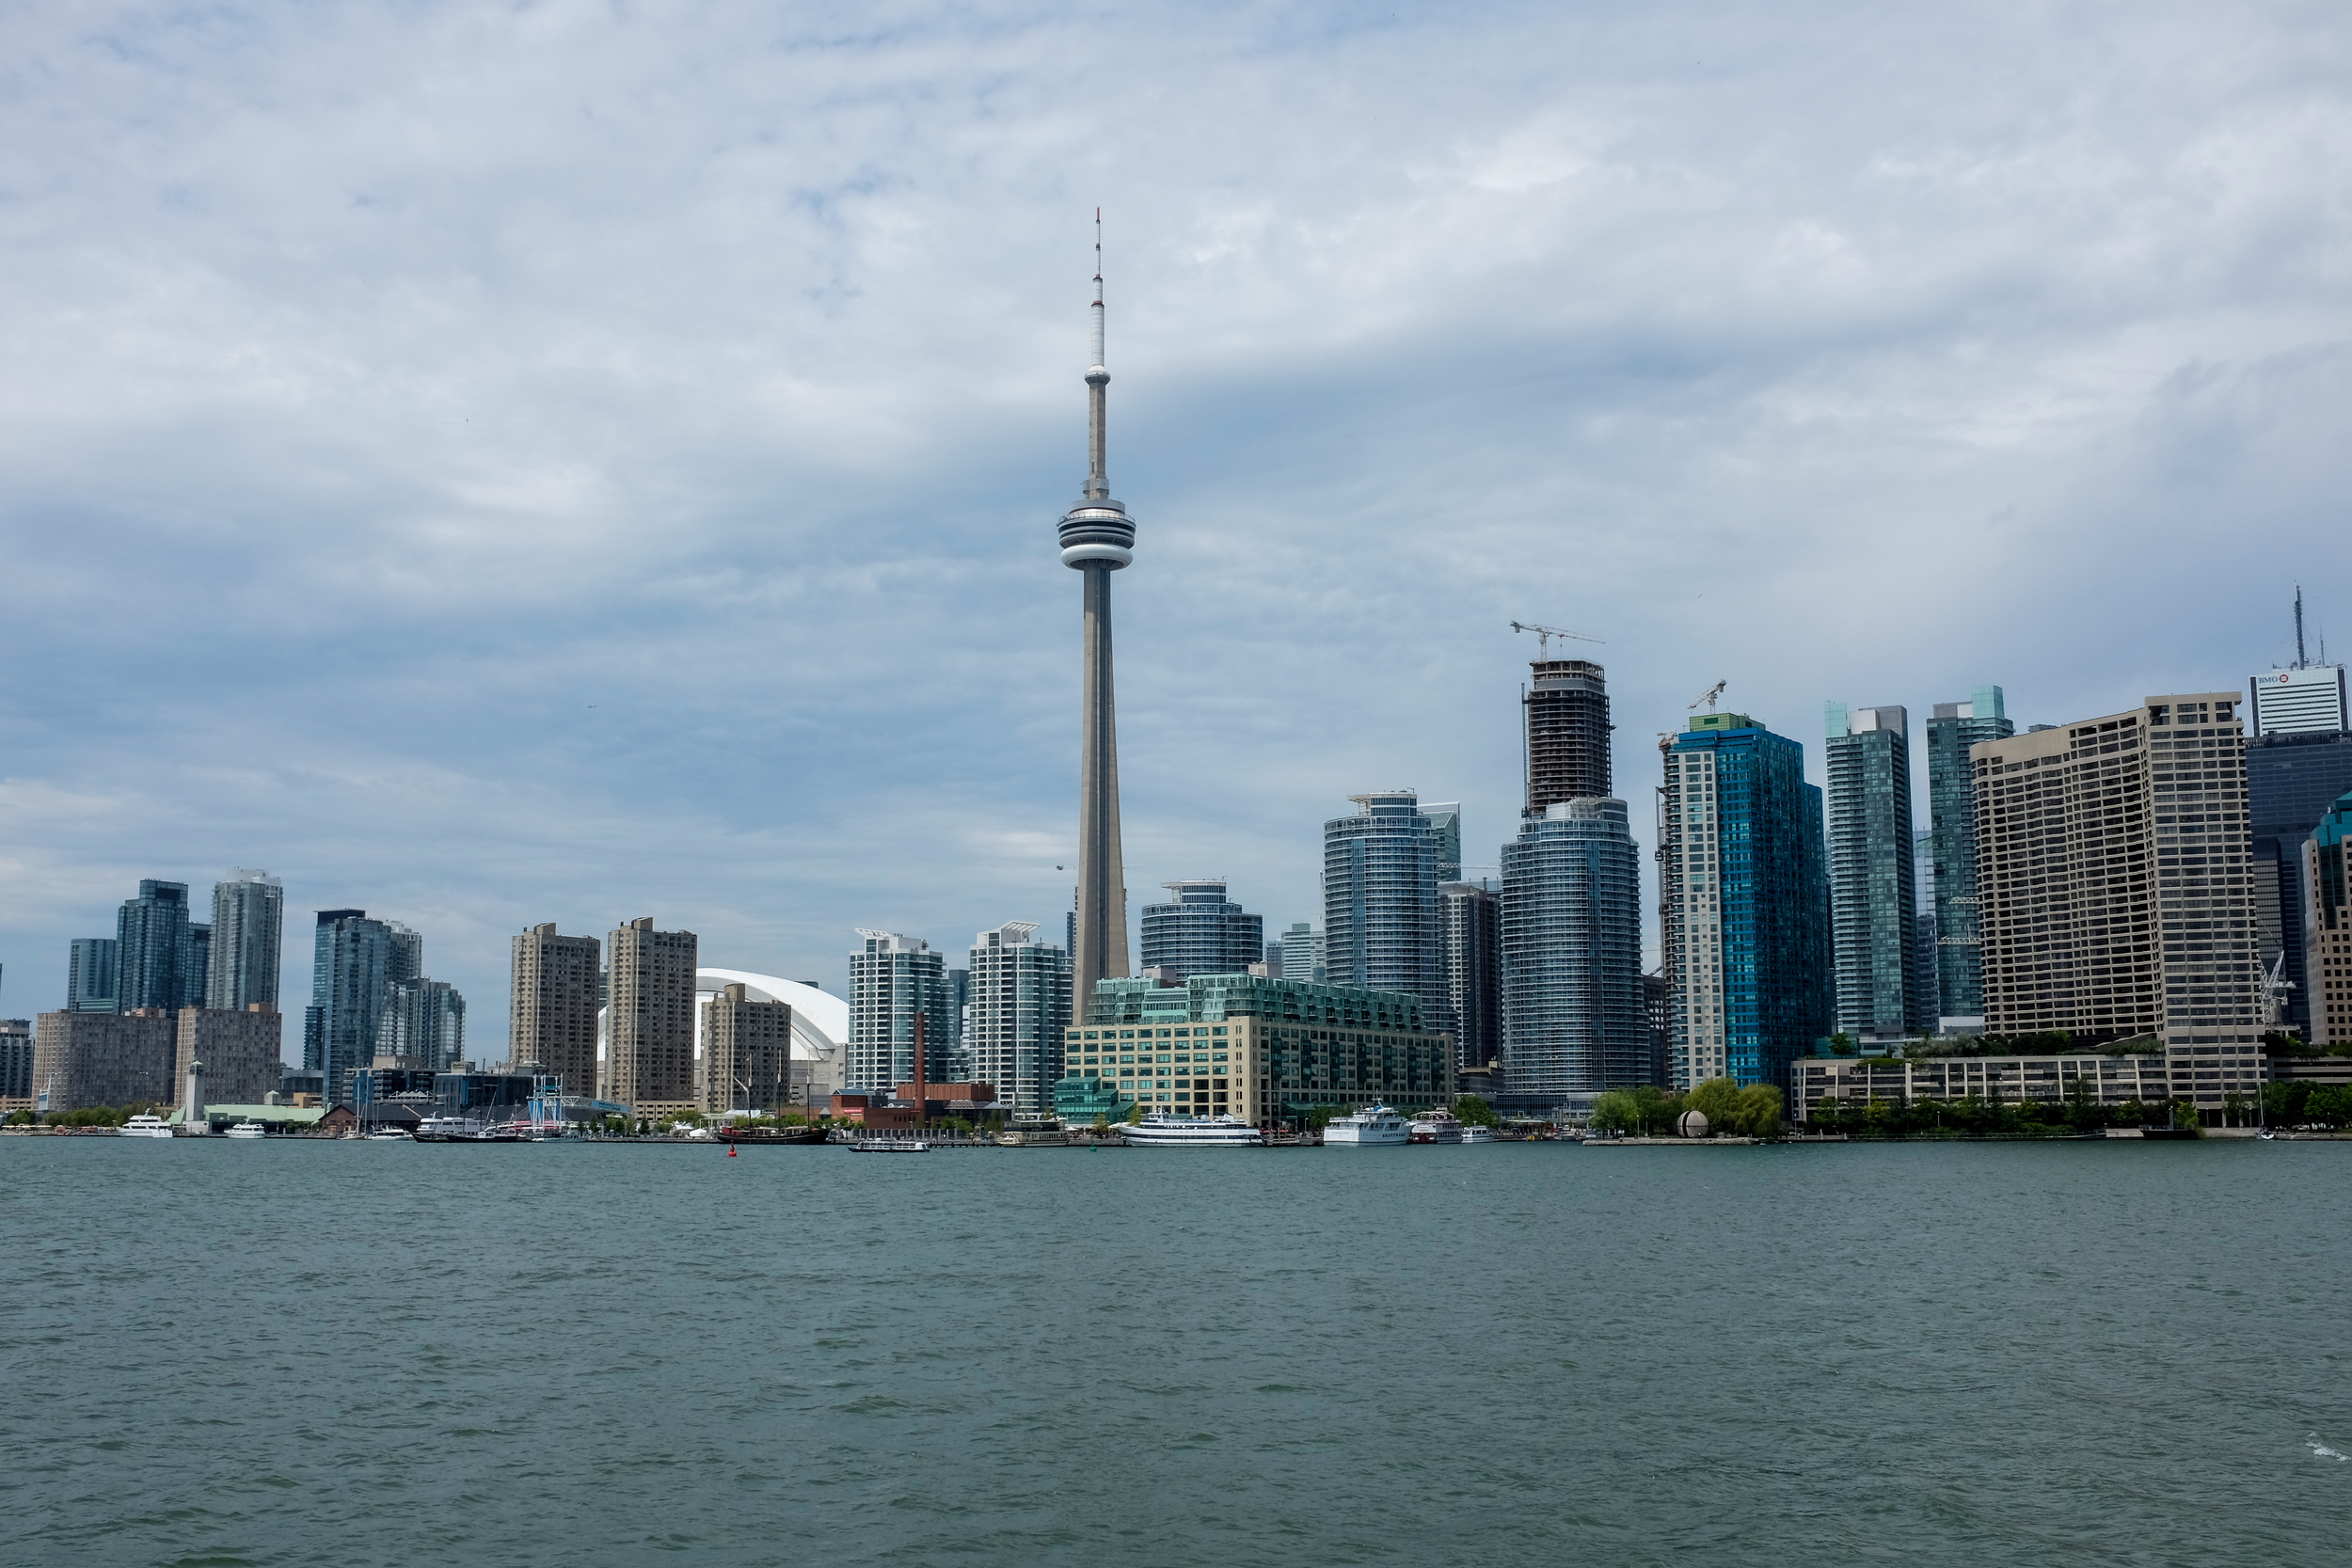 Toronto, Ontario, skyline shot at 1/220, f16 at ISO 200.